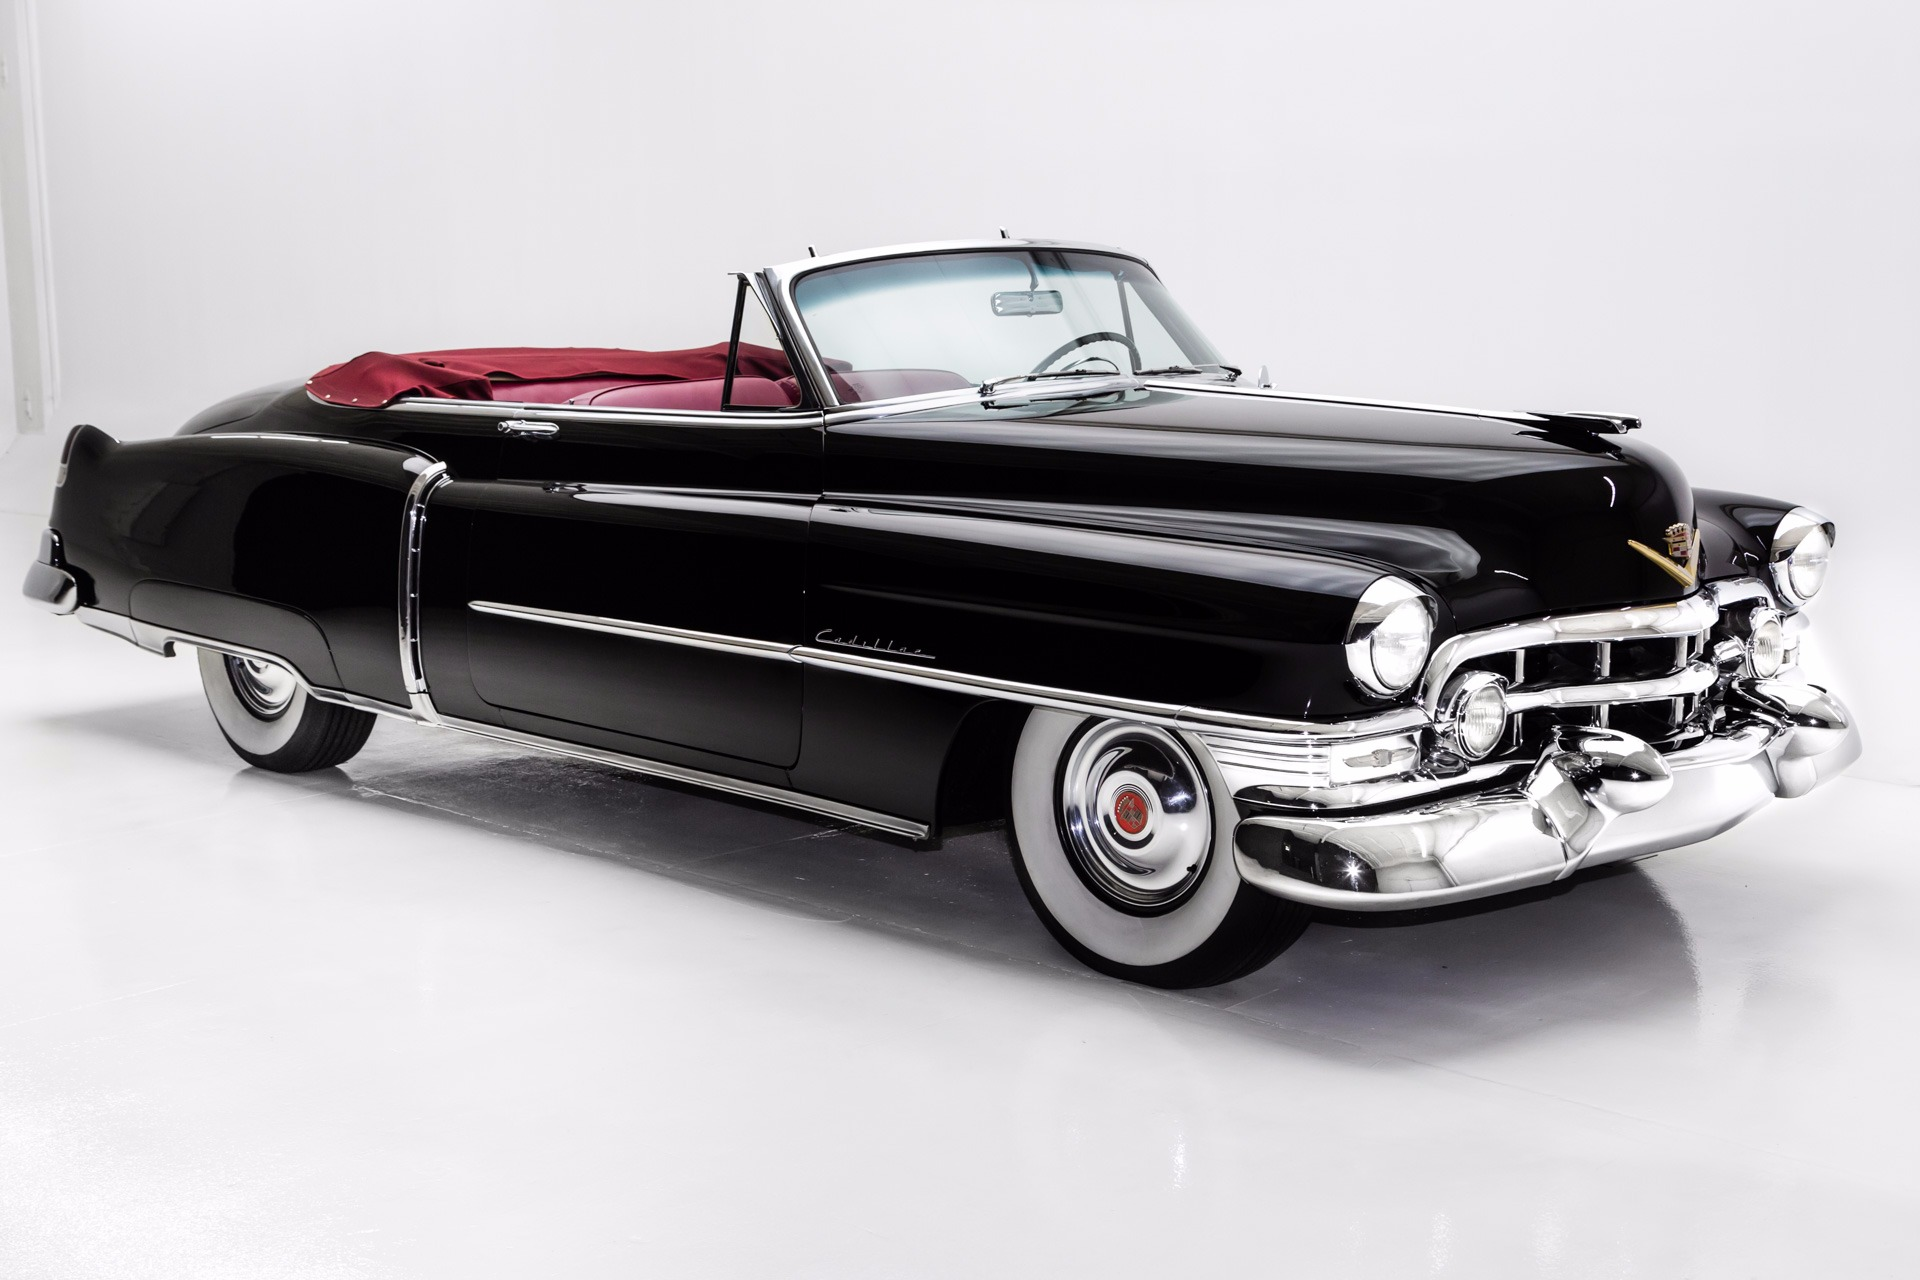 1952 cadillac series 62 convertible red leather american dream machines classic cars. Black Bedroom Furniture Sets. Home Design Ideas